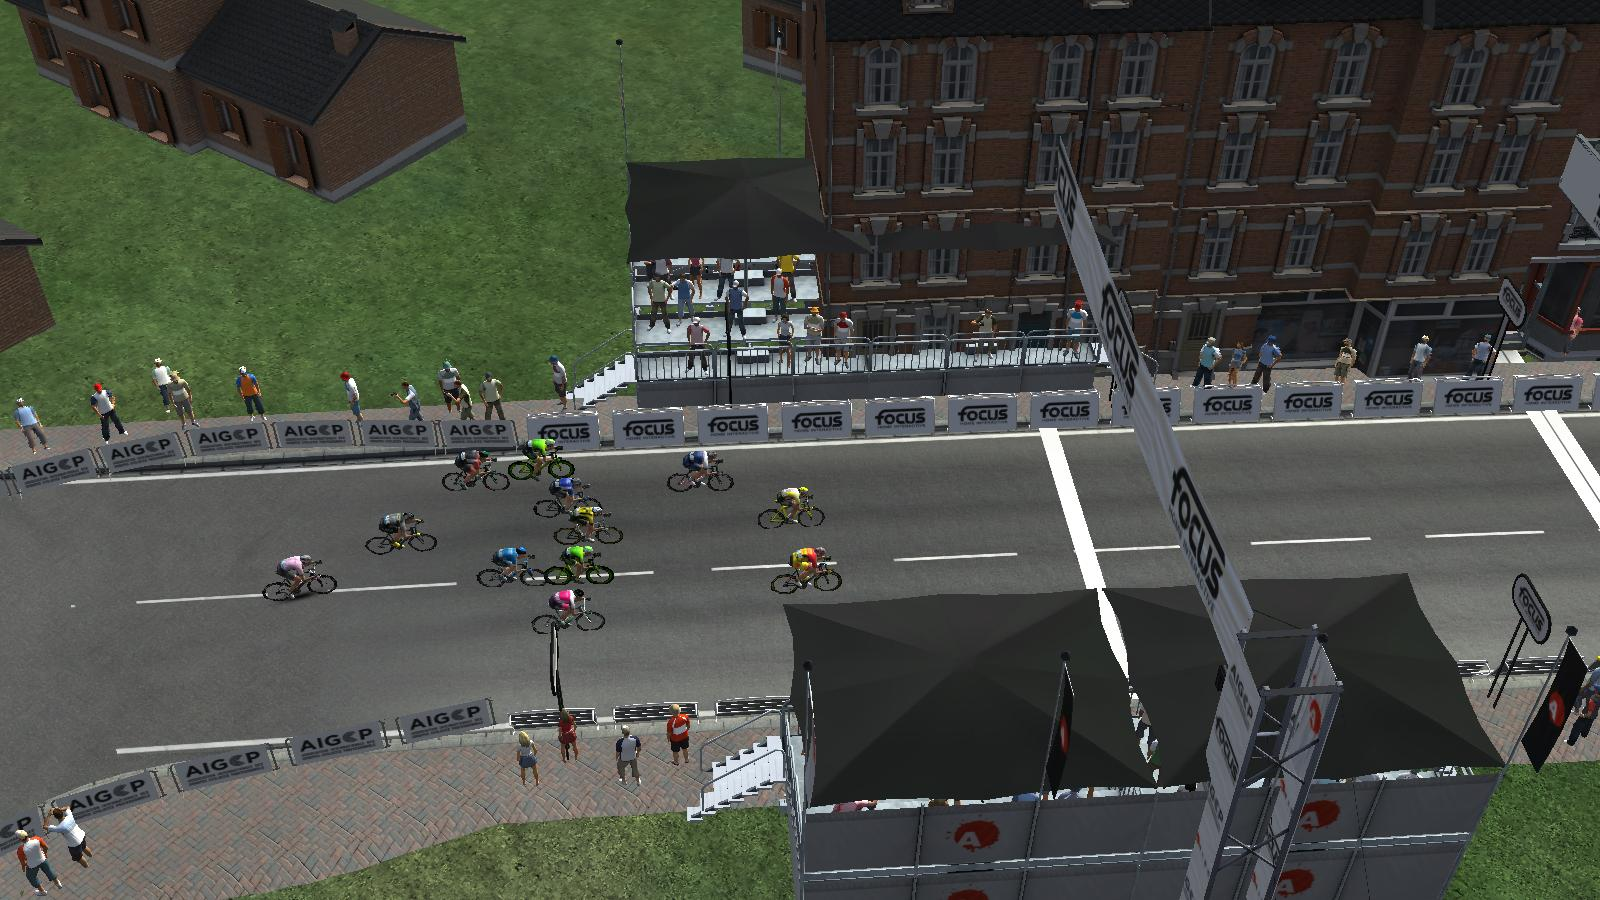 pcmdaily.com/images/mg/2019/Races/PTHC/Rheden/42.jpg